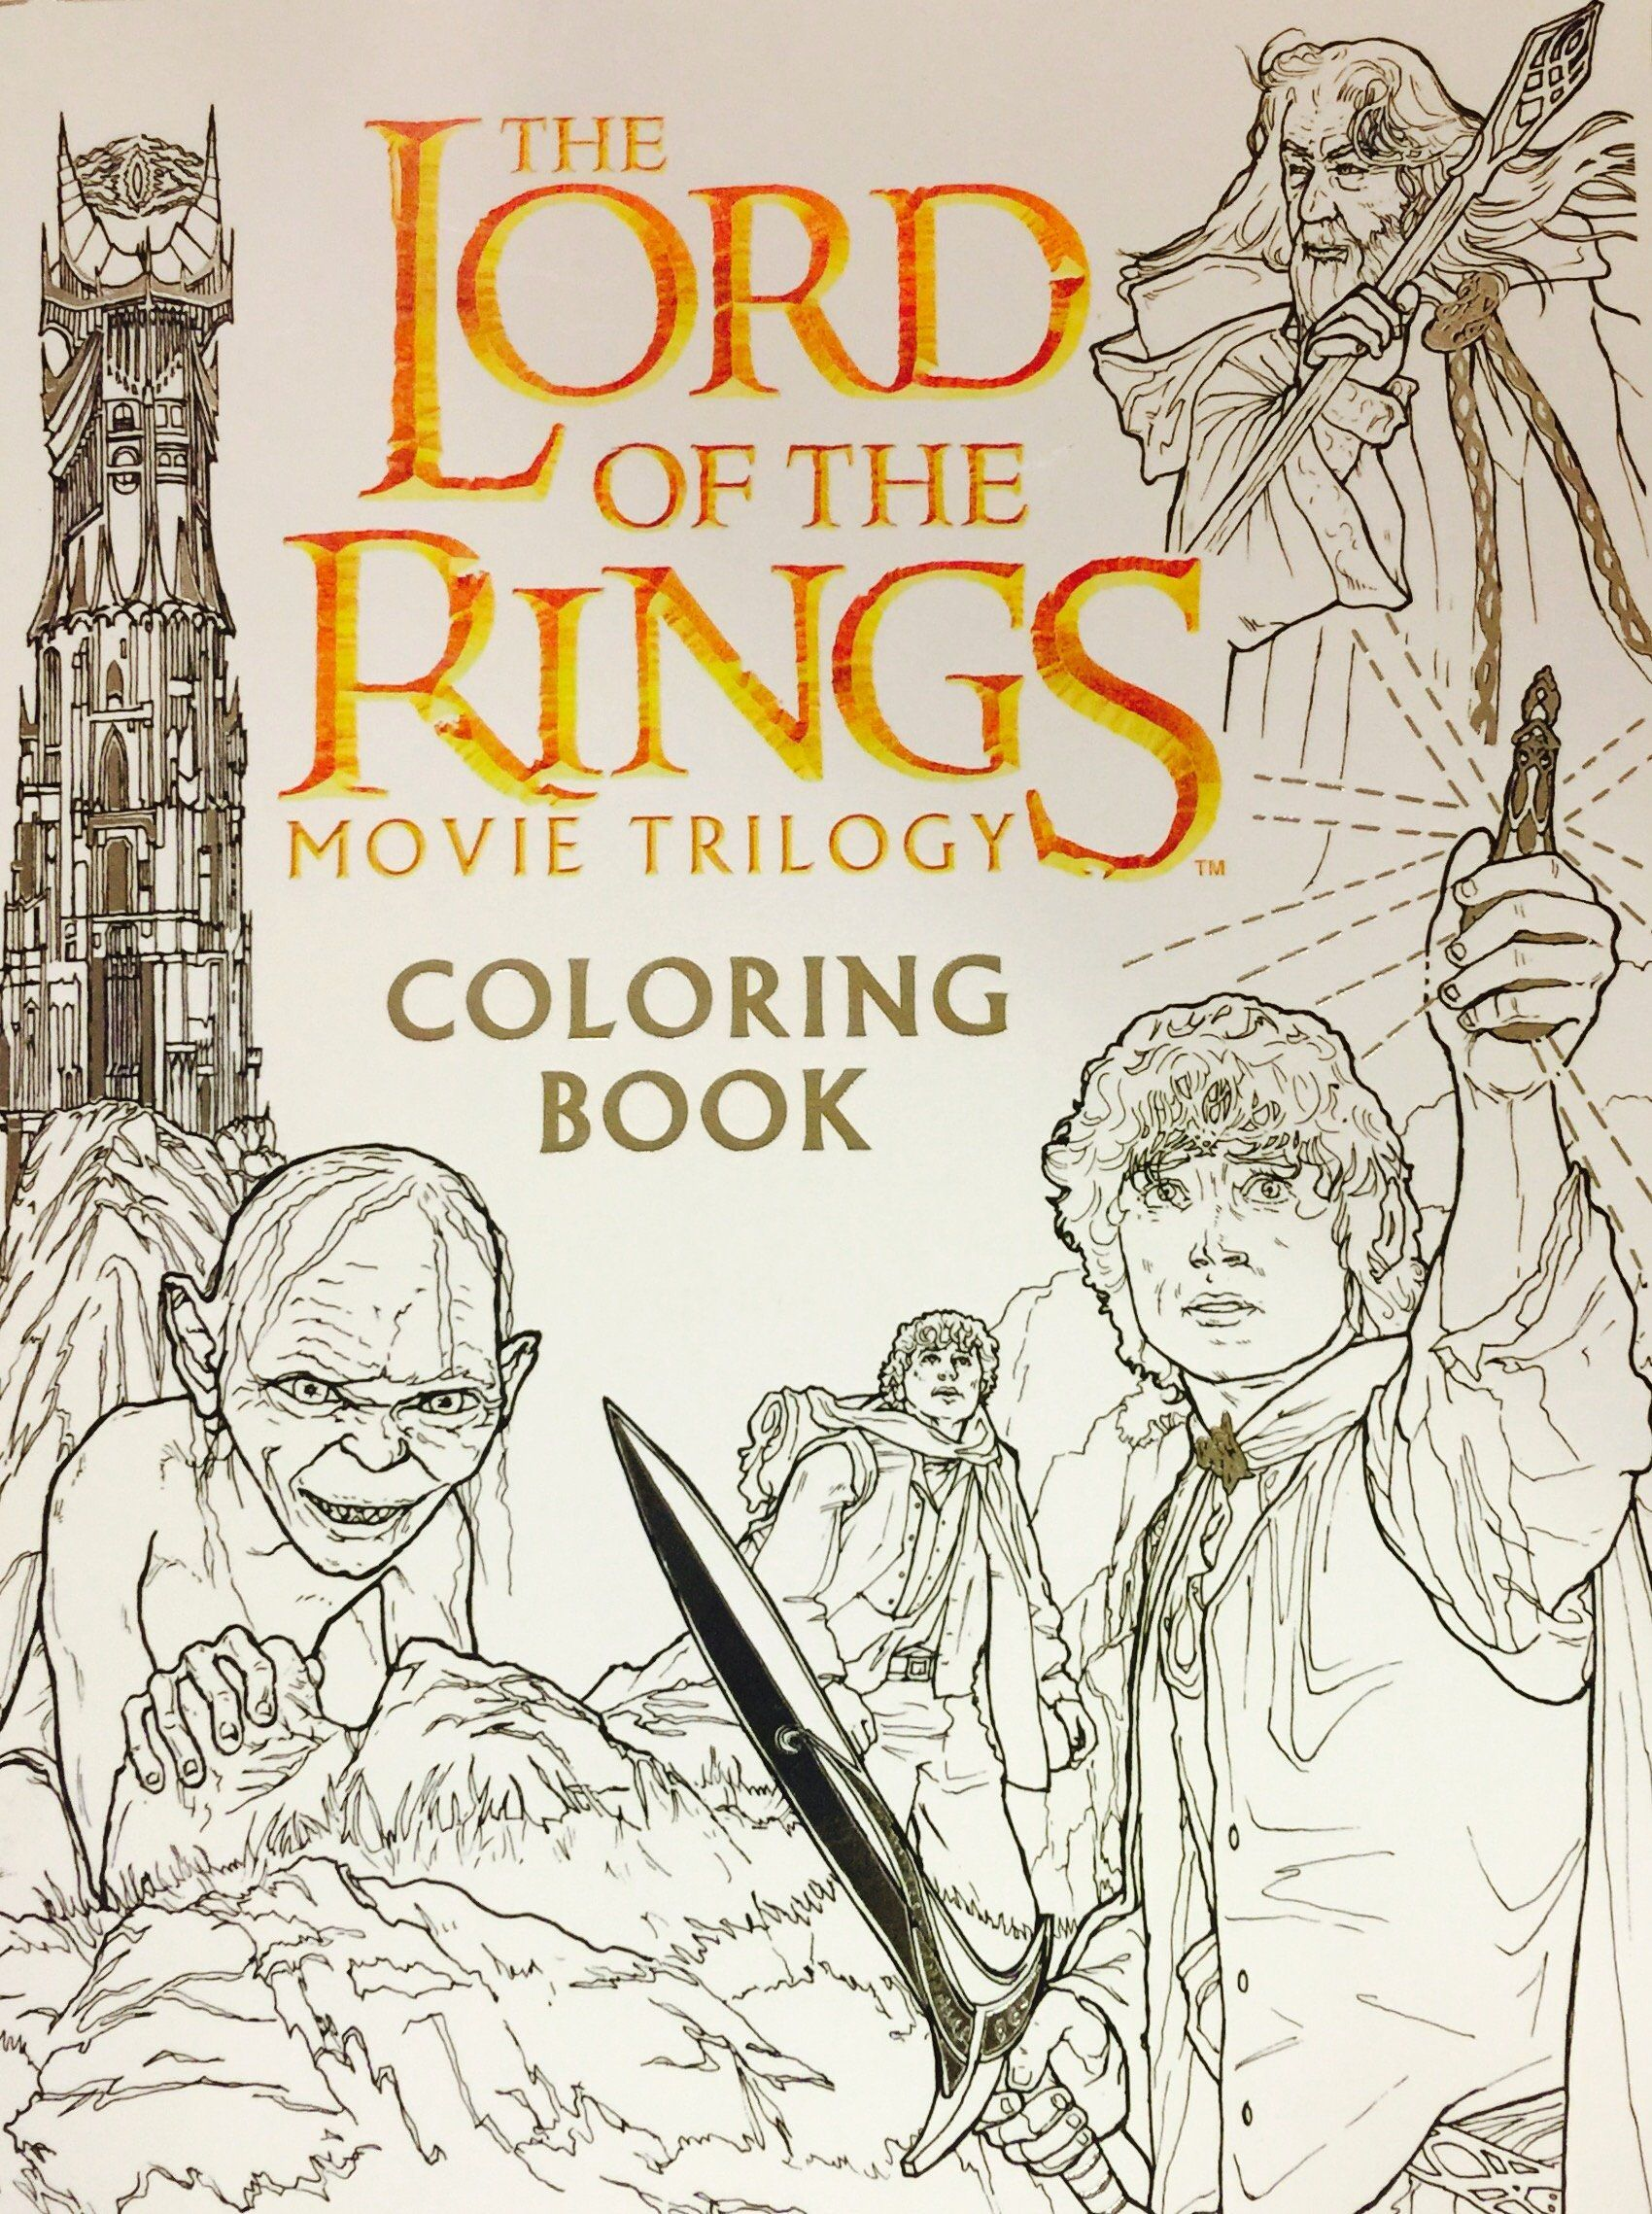 Lord Of The Rings Coloring Book Luxury Back To Coloring Cindy Goes Beyond Coloring Books Coloring Book Download Lord Of The Rings